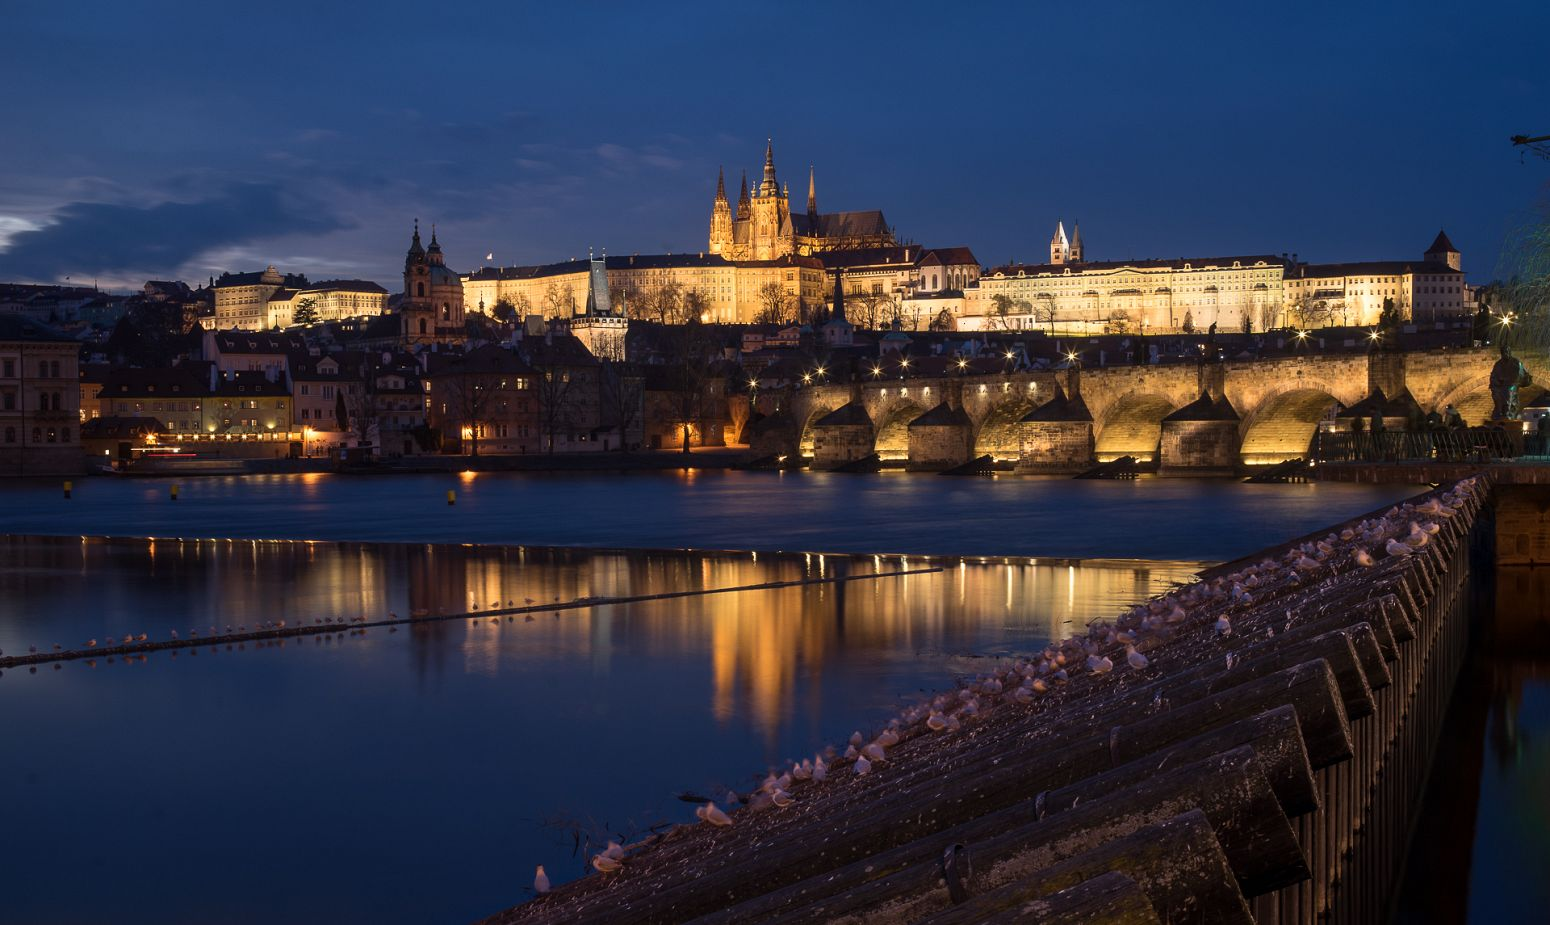 Charles Bridge and Castle, Prague, Czech Republic